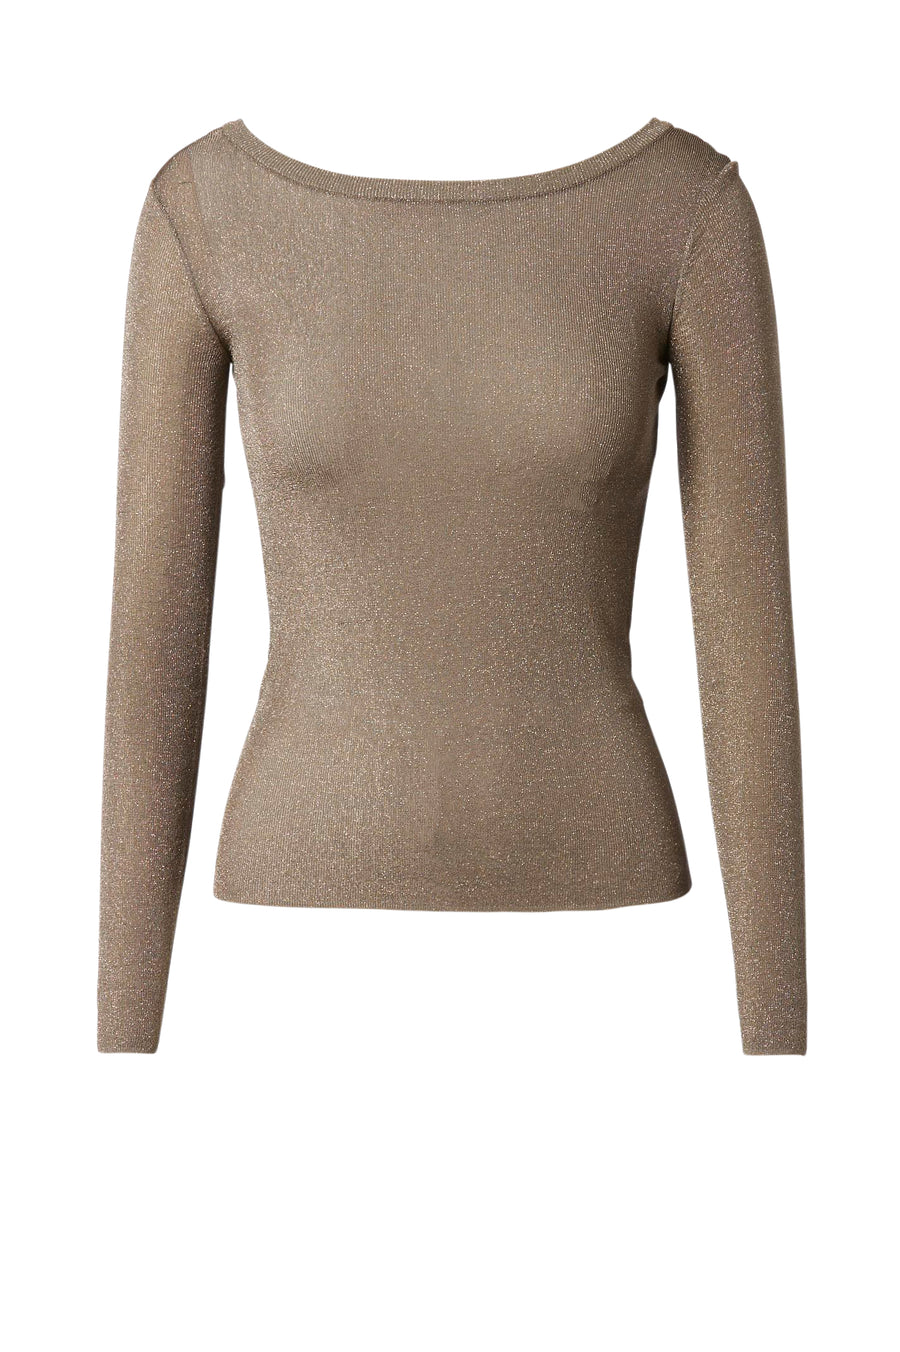 Sparkle Rib Boat Neck Sweater has a boatneck and is designed for a slim fit, color clay